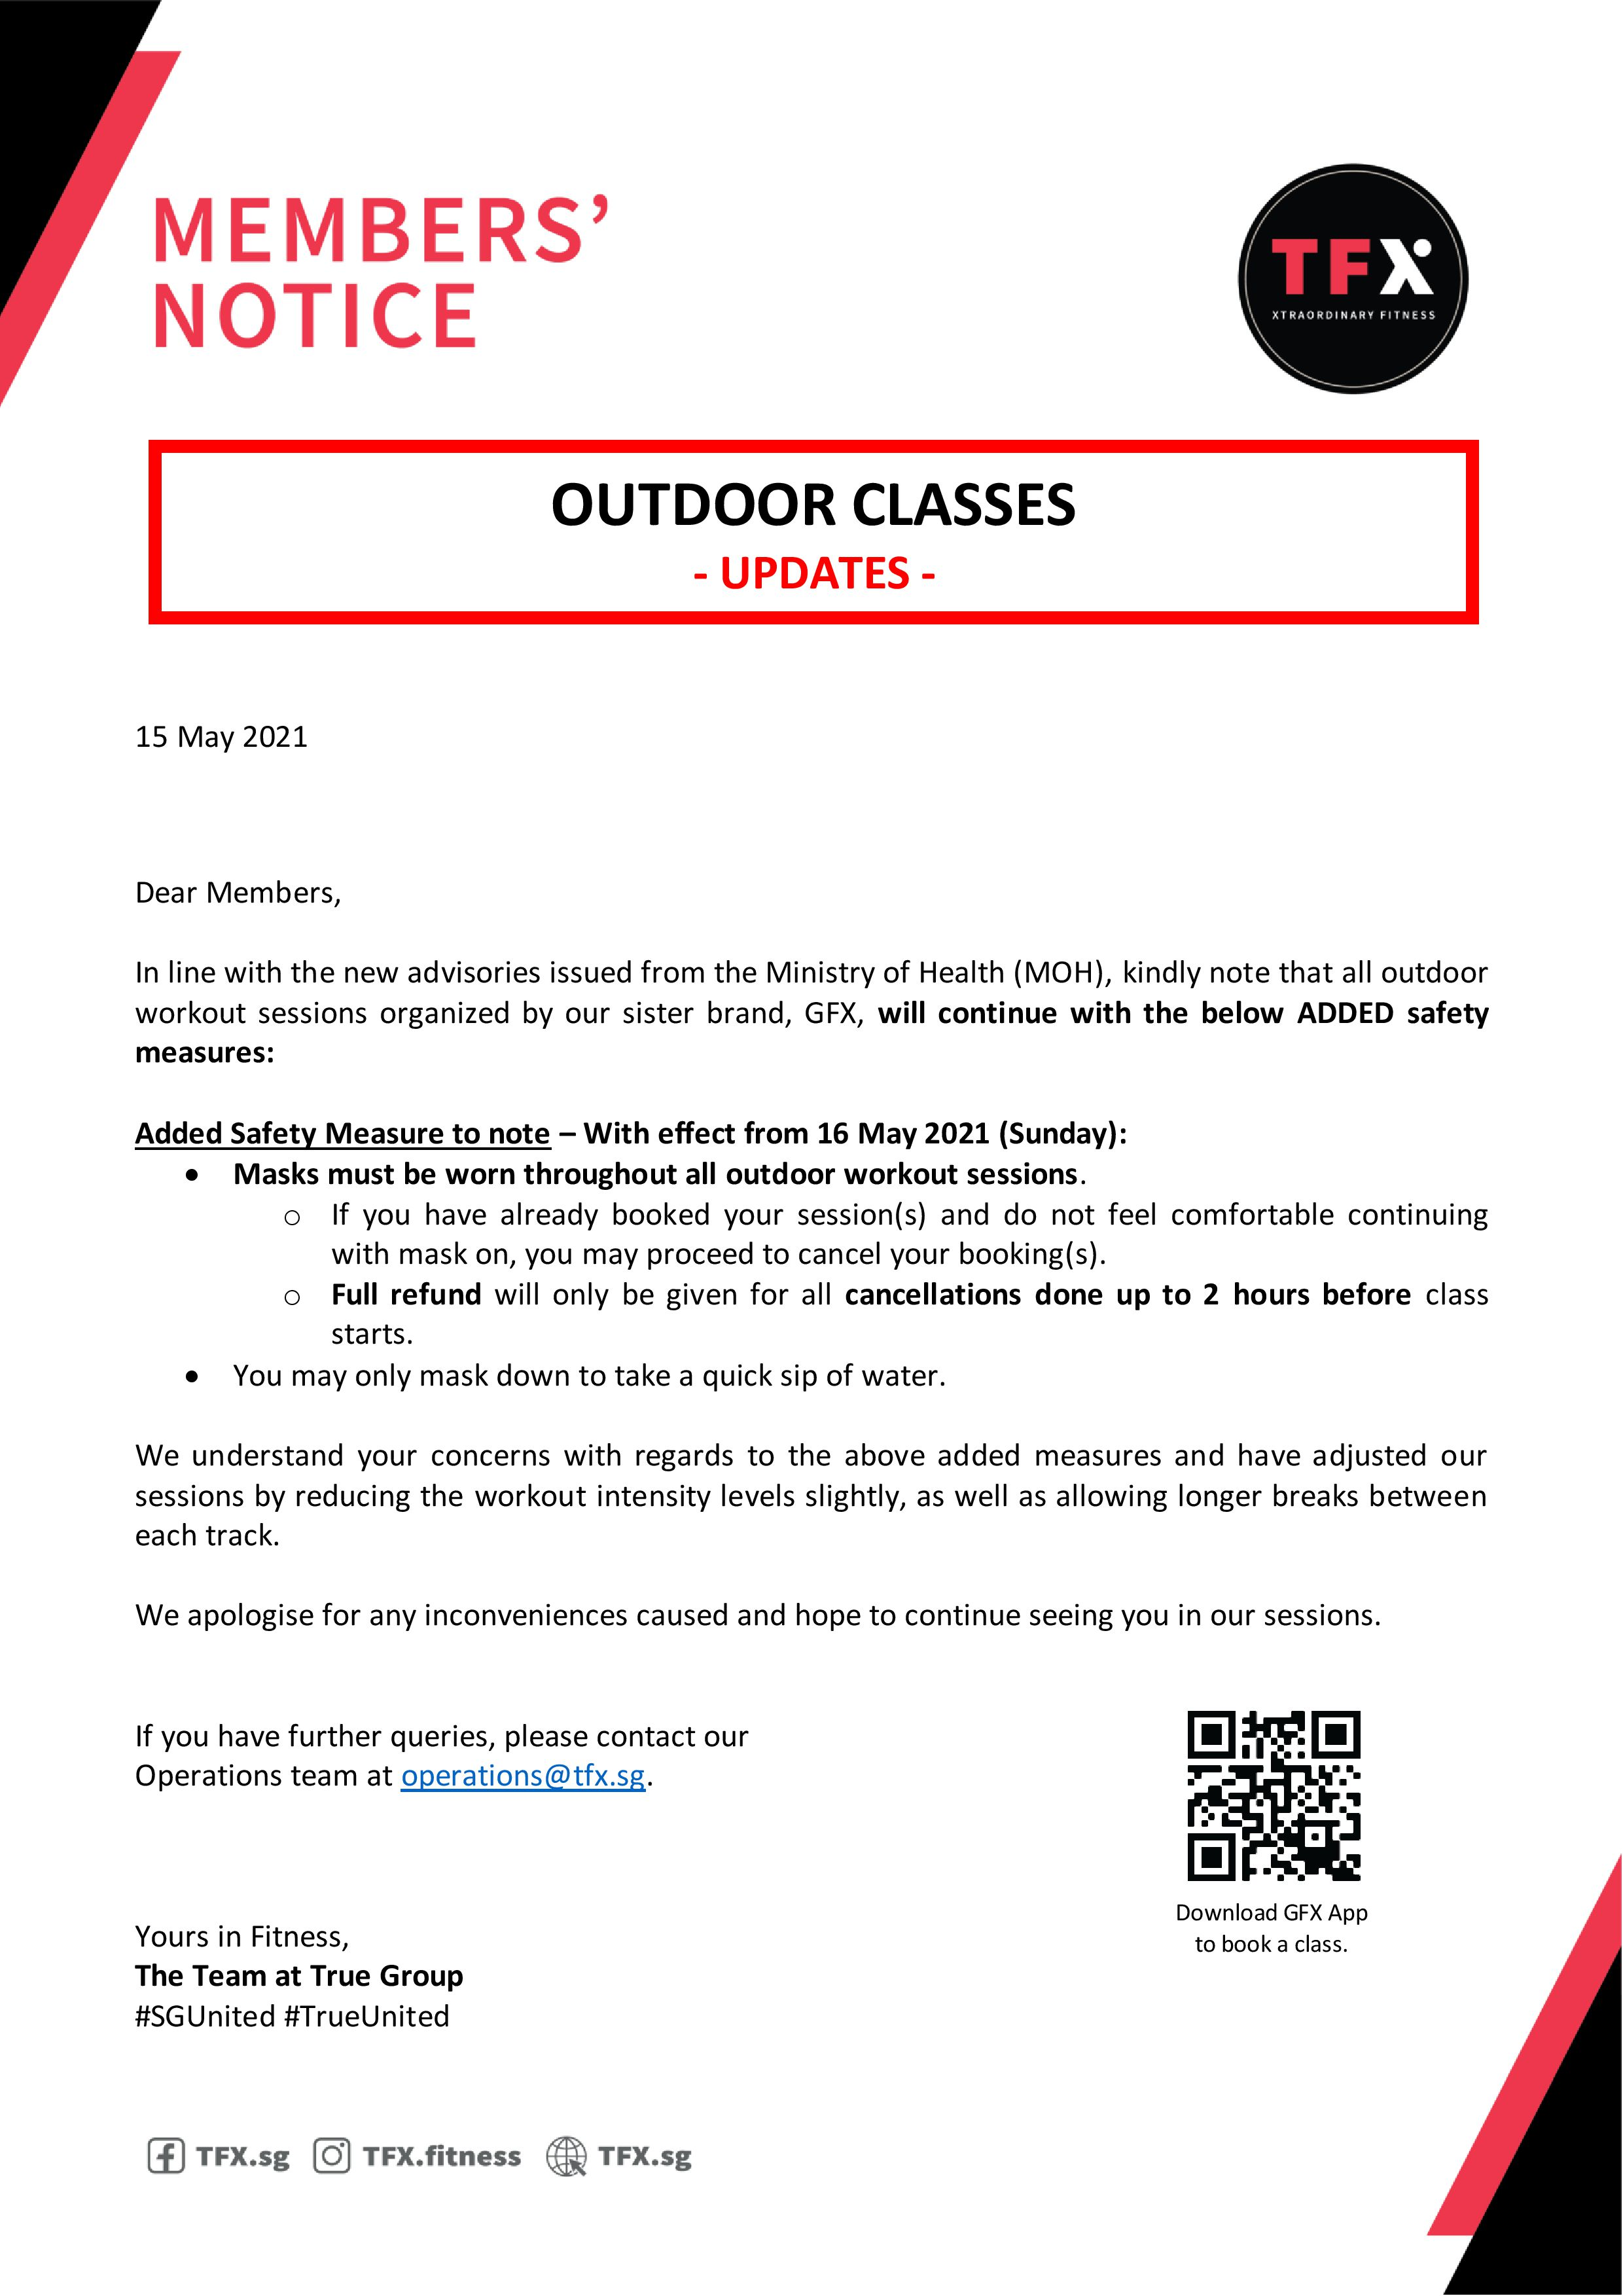 Updates to Outdoor Classes organised by GFX